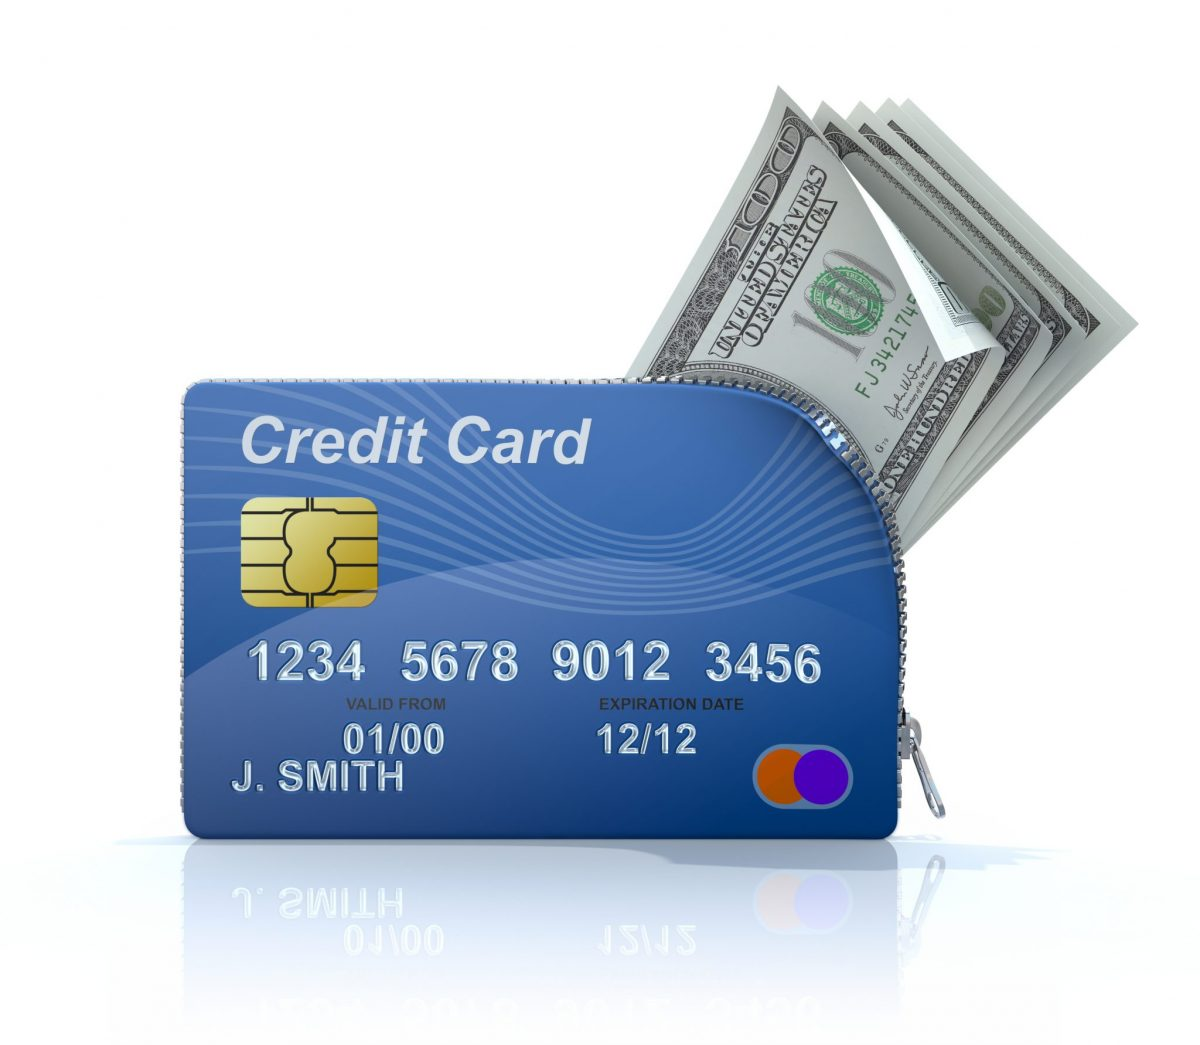 Almost Instant Approval Credit Cards for Bad Credit